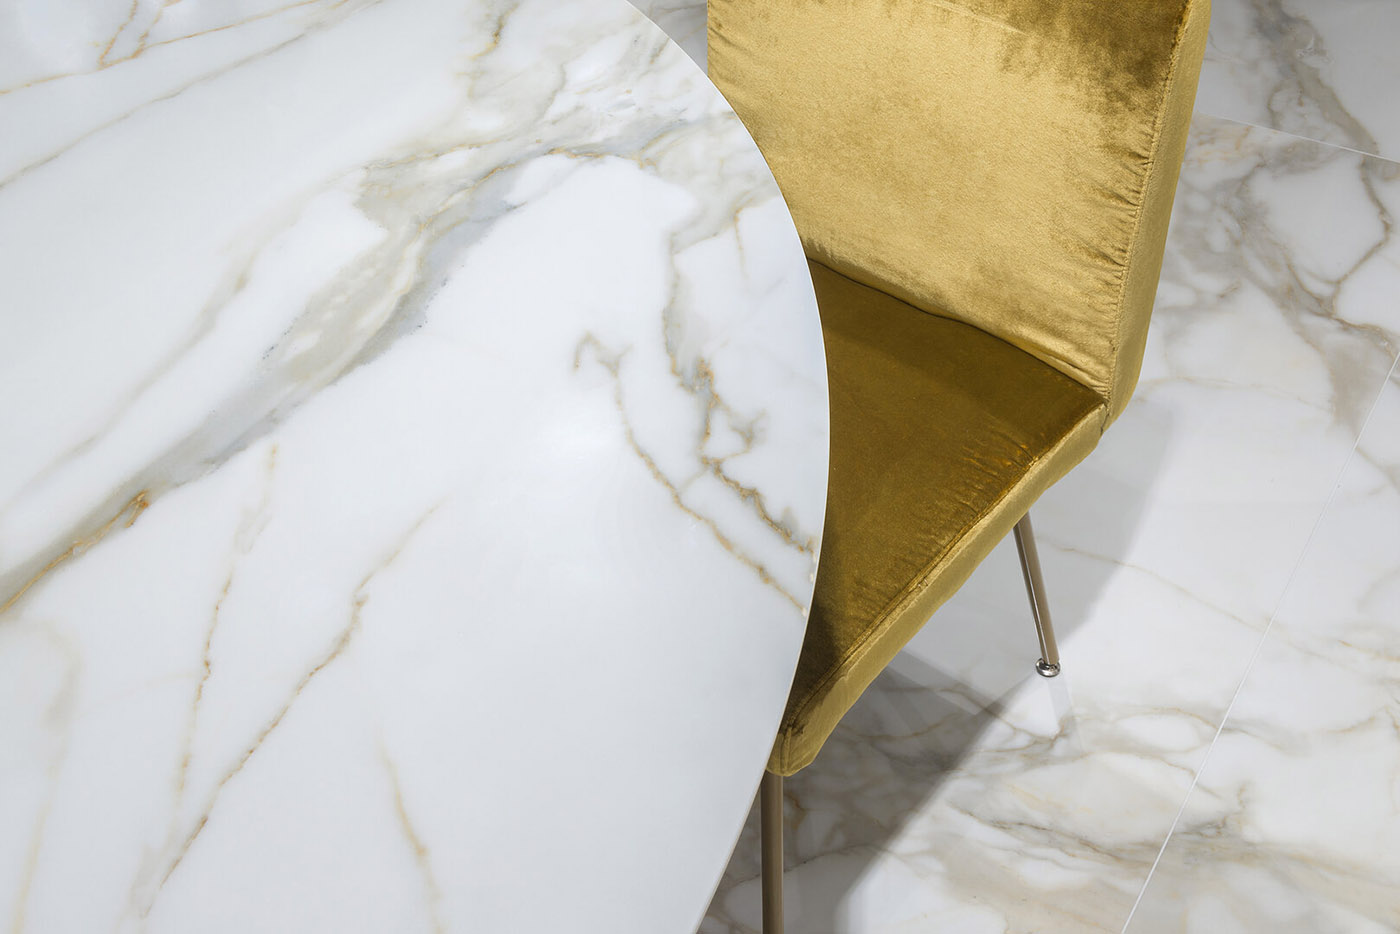 Porcelain tiles for interior design Iris